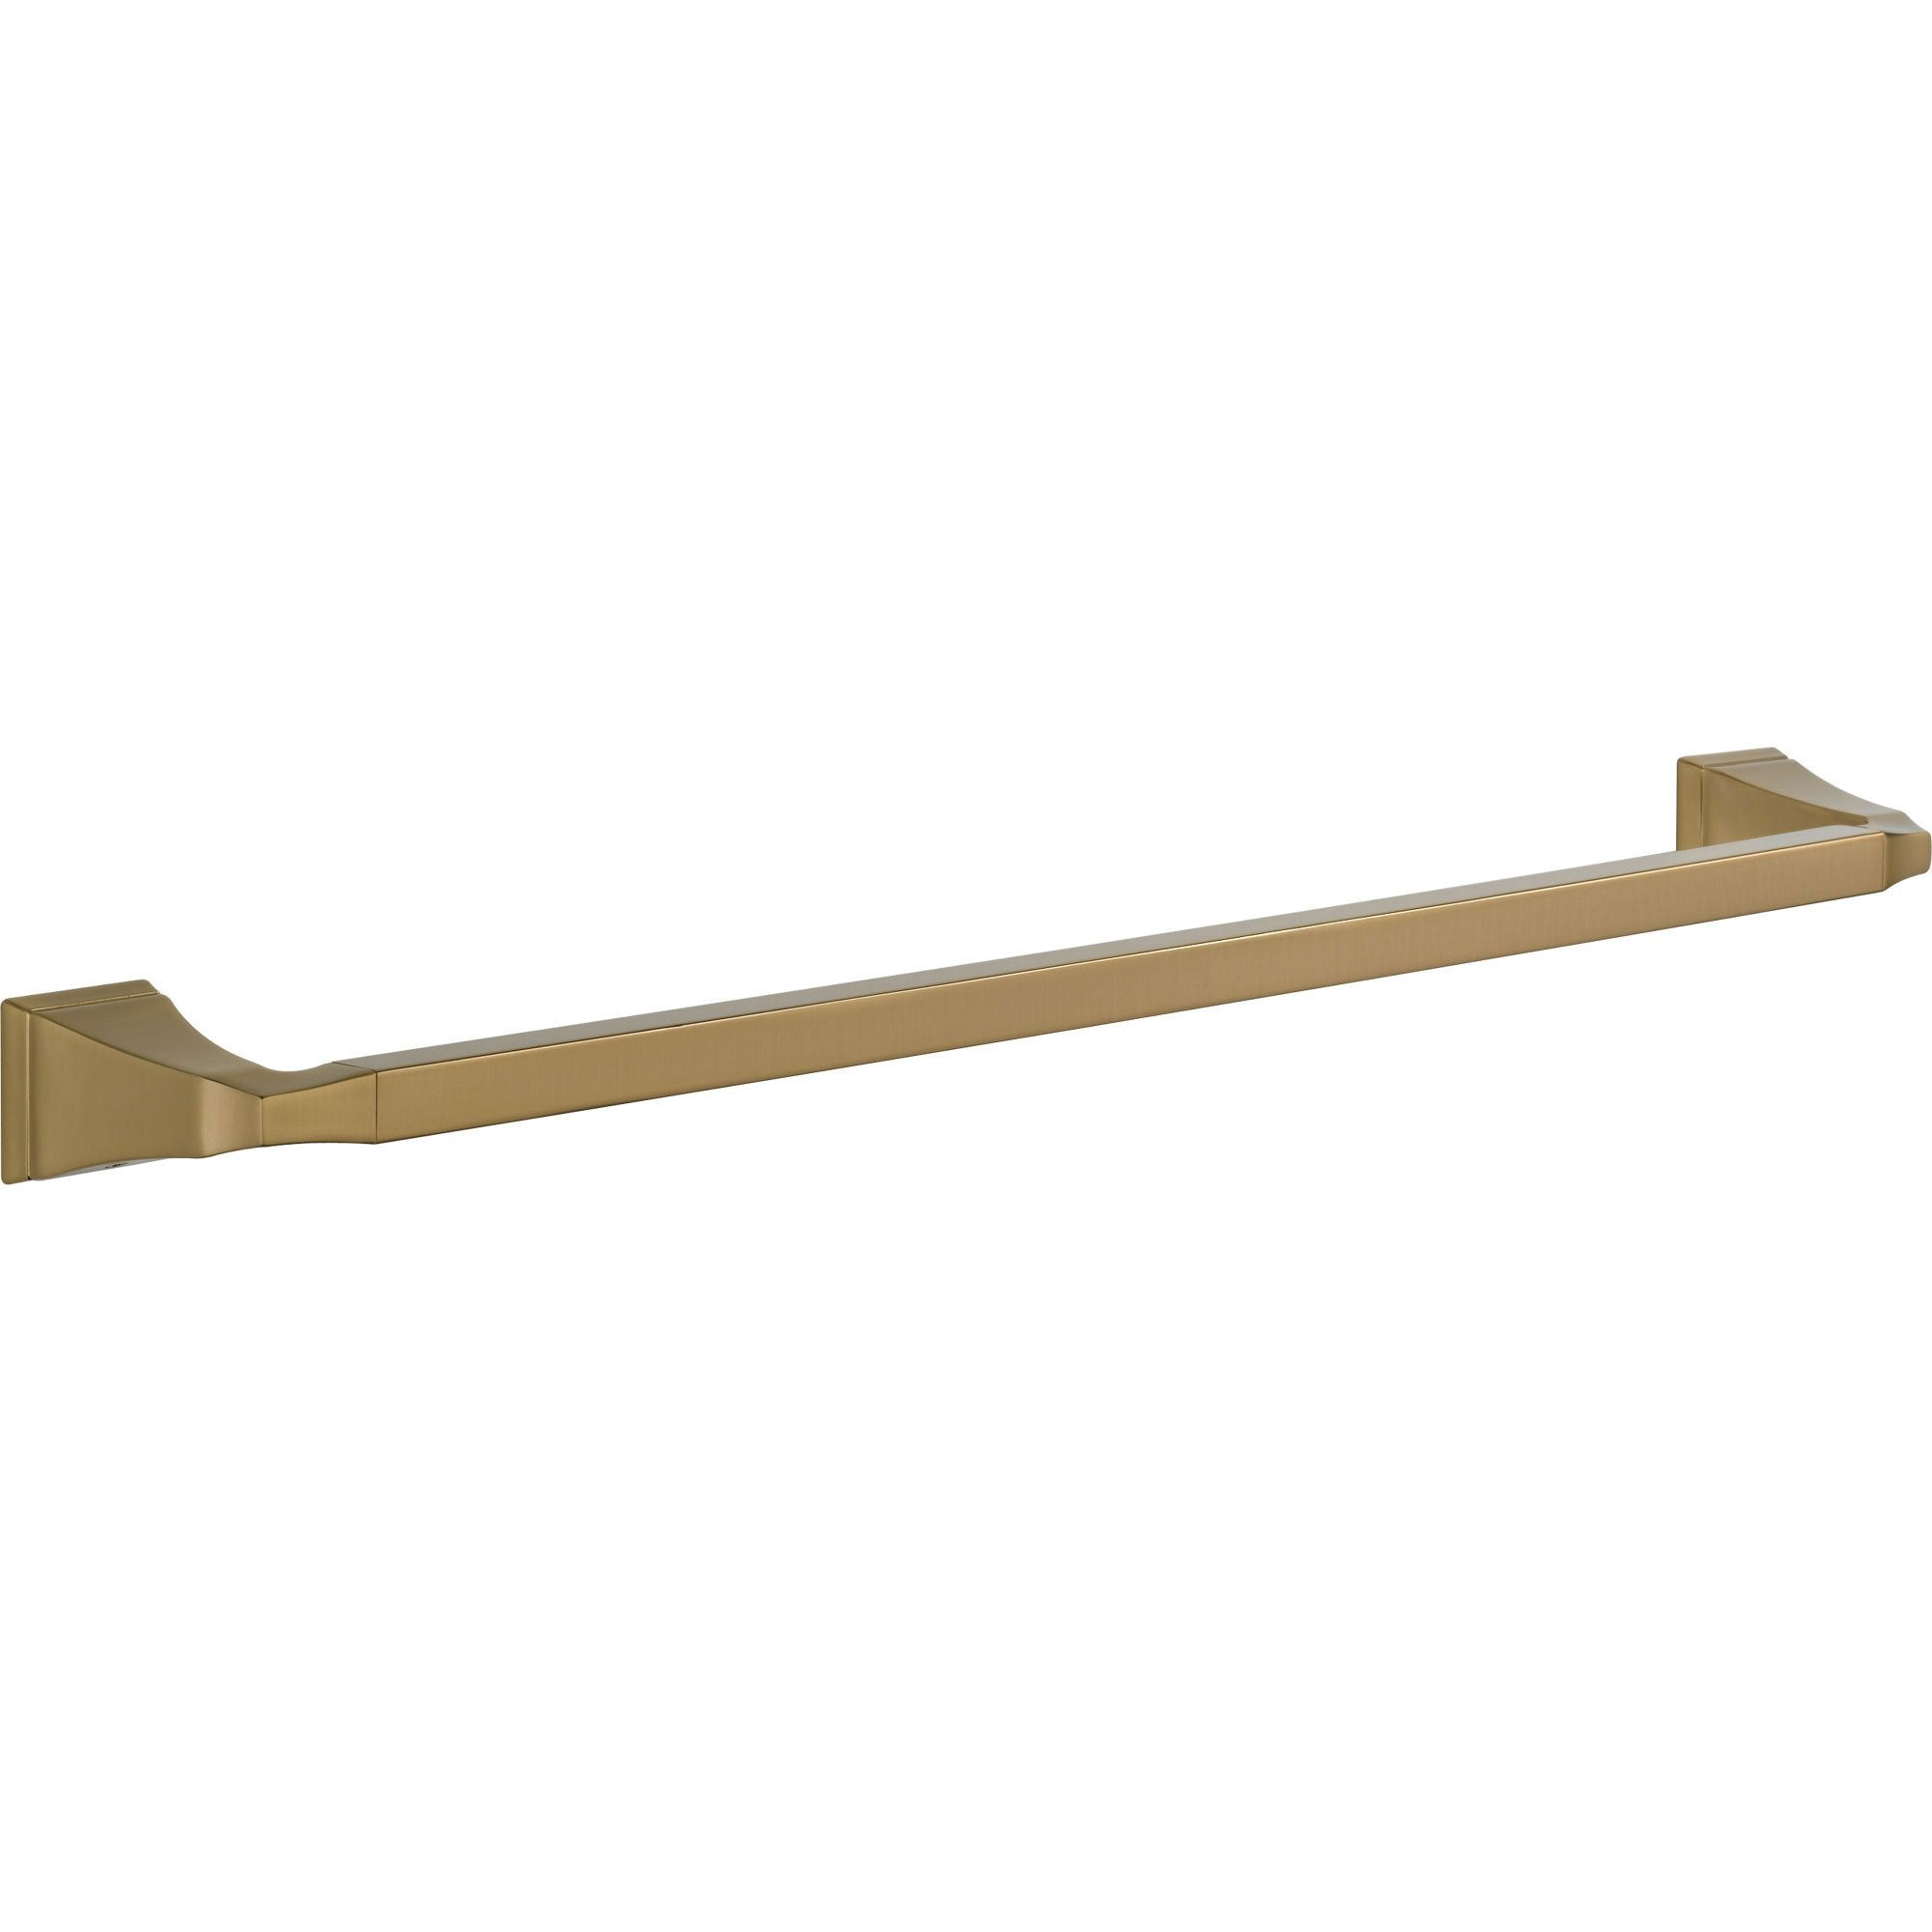 Delta Dryden Champagne Bronze Finish 24 inch Modern Single Towel Bar 567279